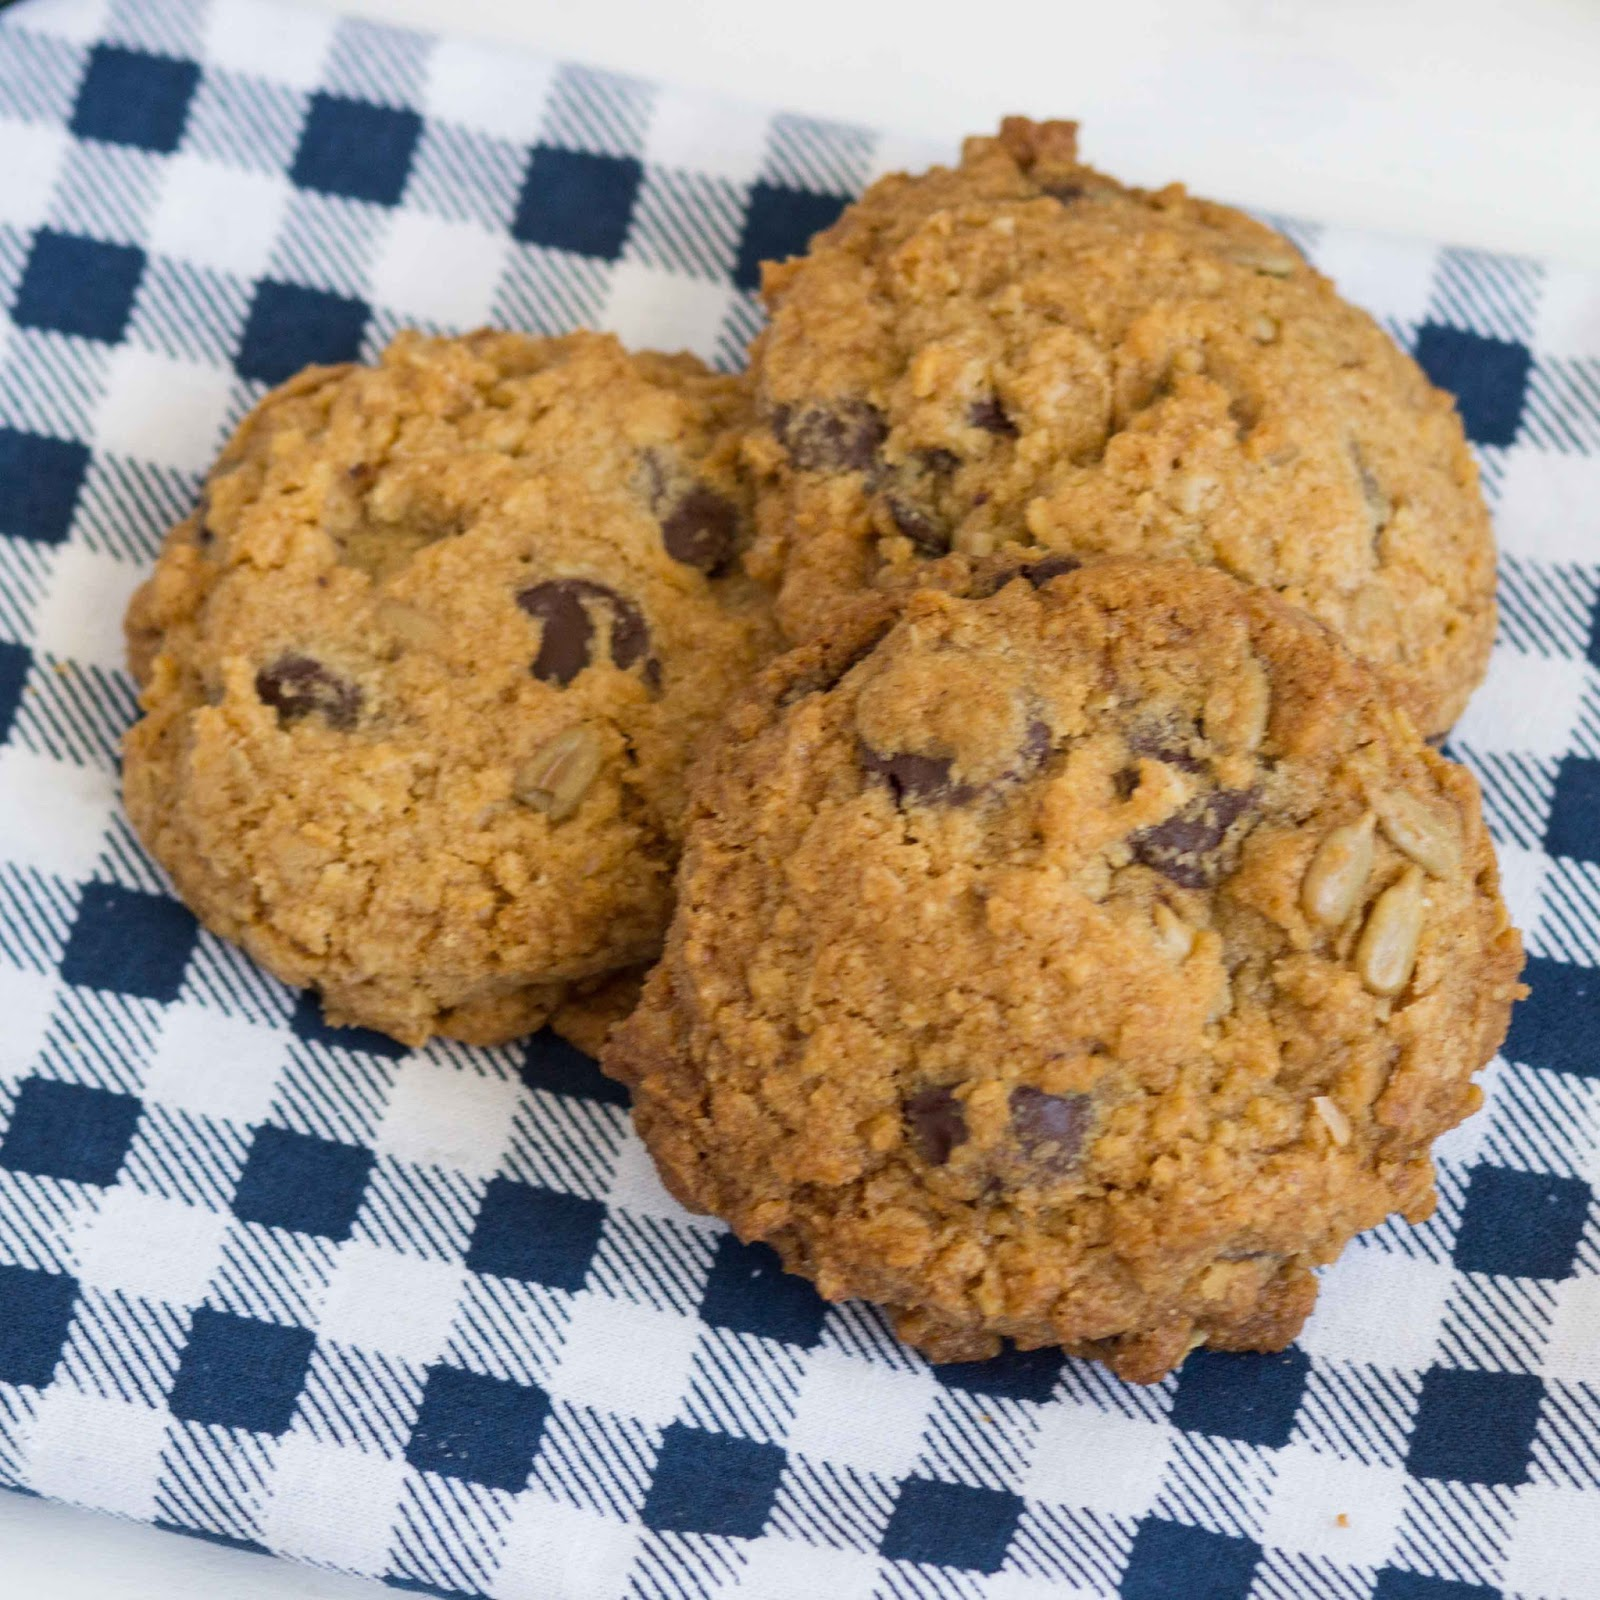 ... : Egg-Free, Nut-Free Oatmeal Chocolate Chip Sunflower Seed Cookies